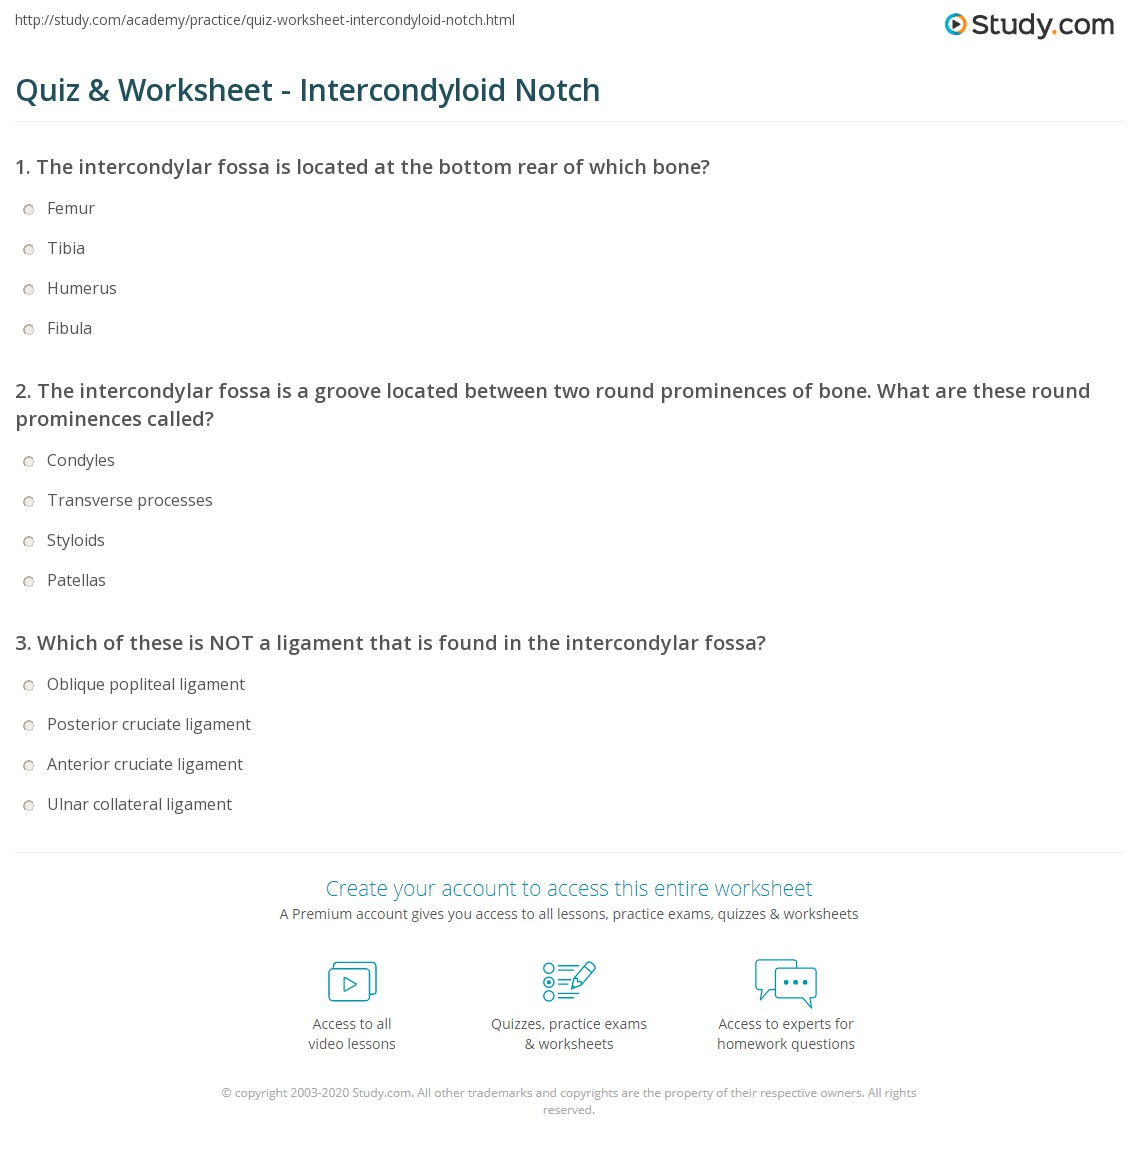 Quiz Worksheet Intercondyloid Notch Study